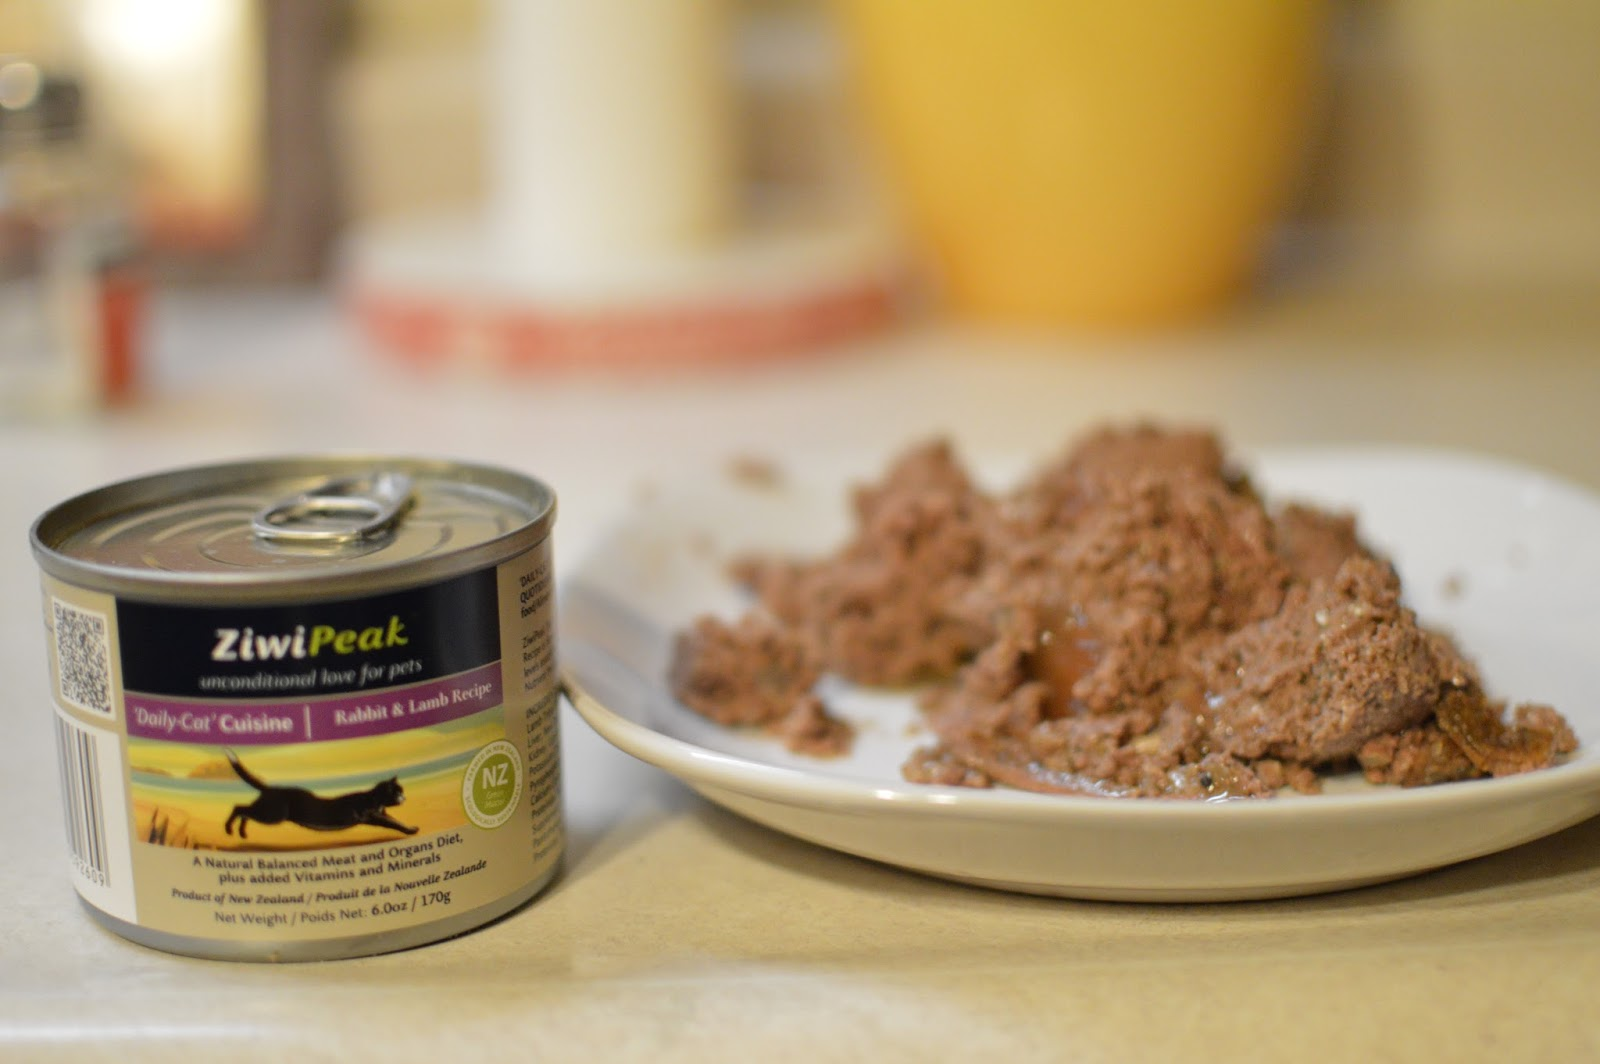 Ziwipeak Cat Food Ingredients